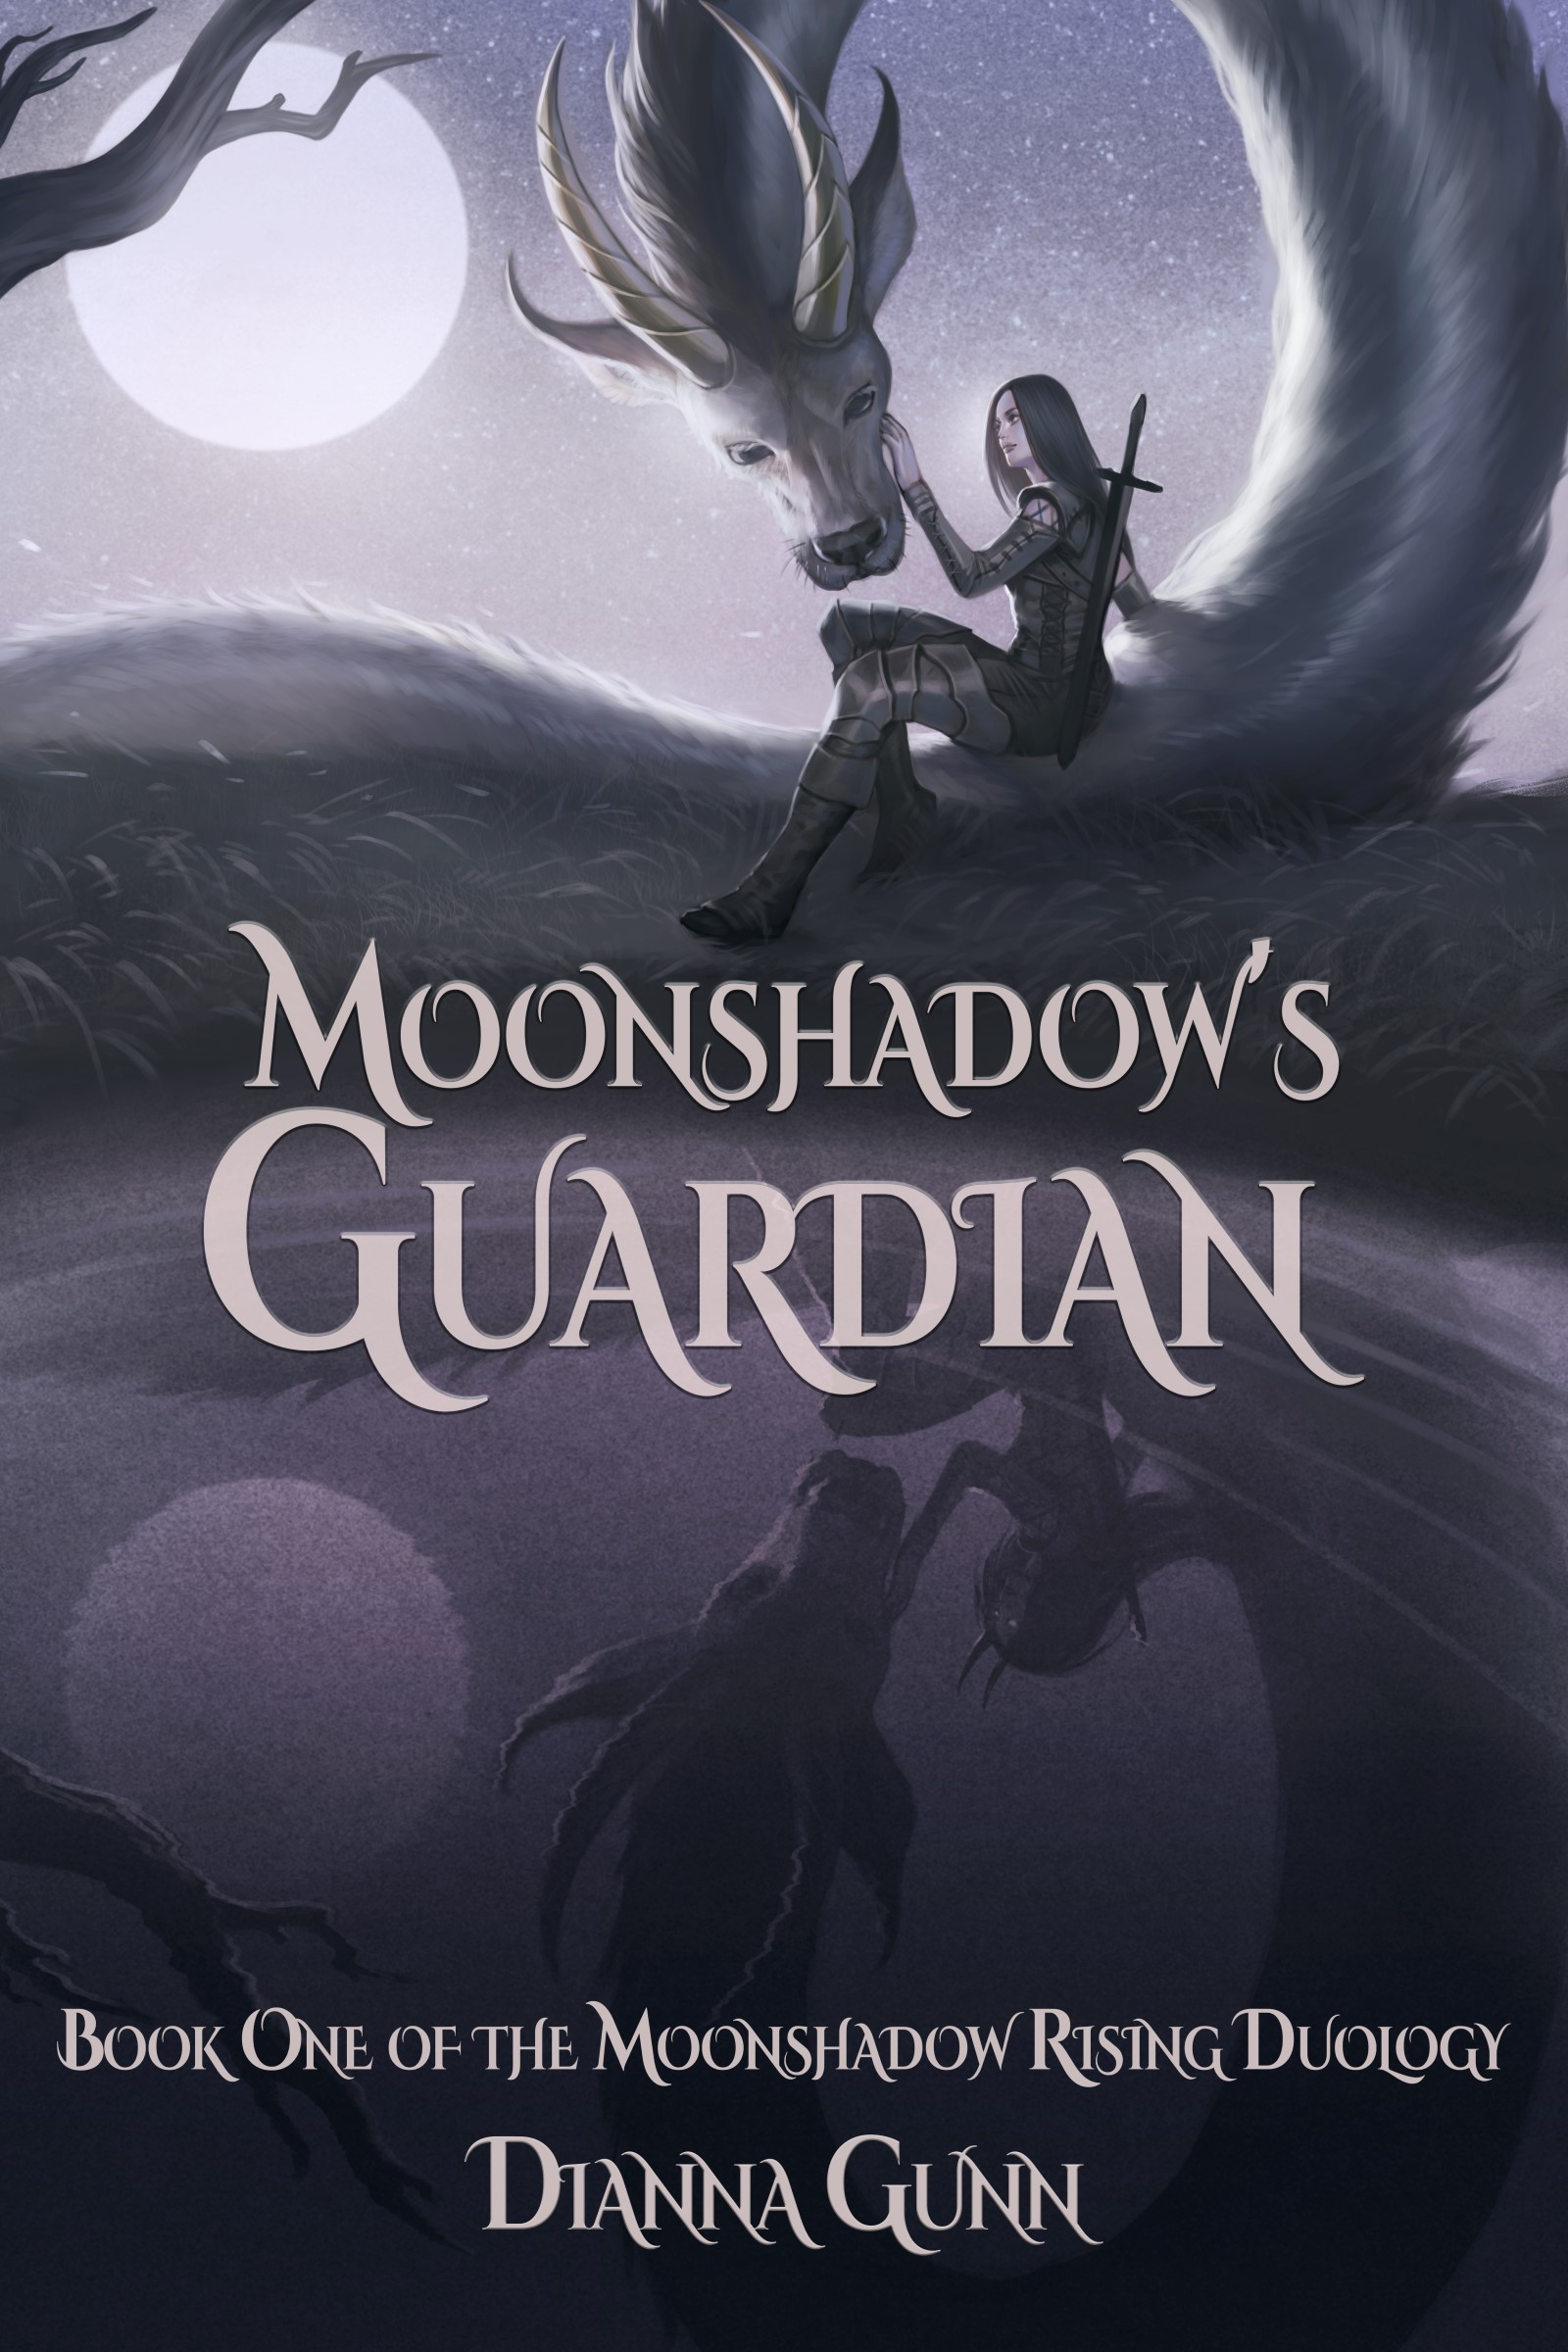 Moonshadow's Guardian